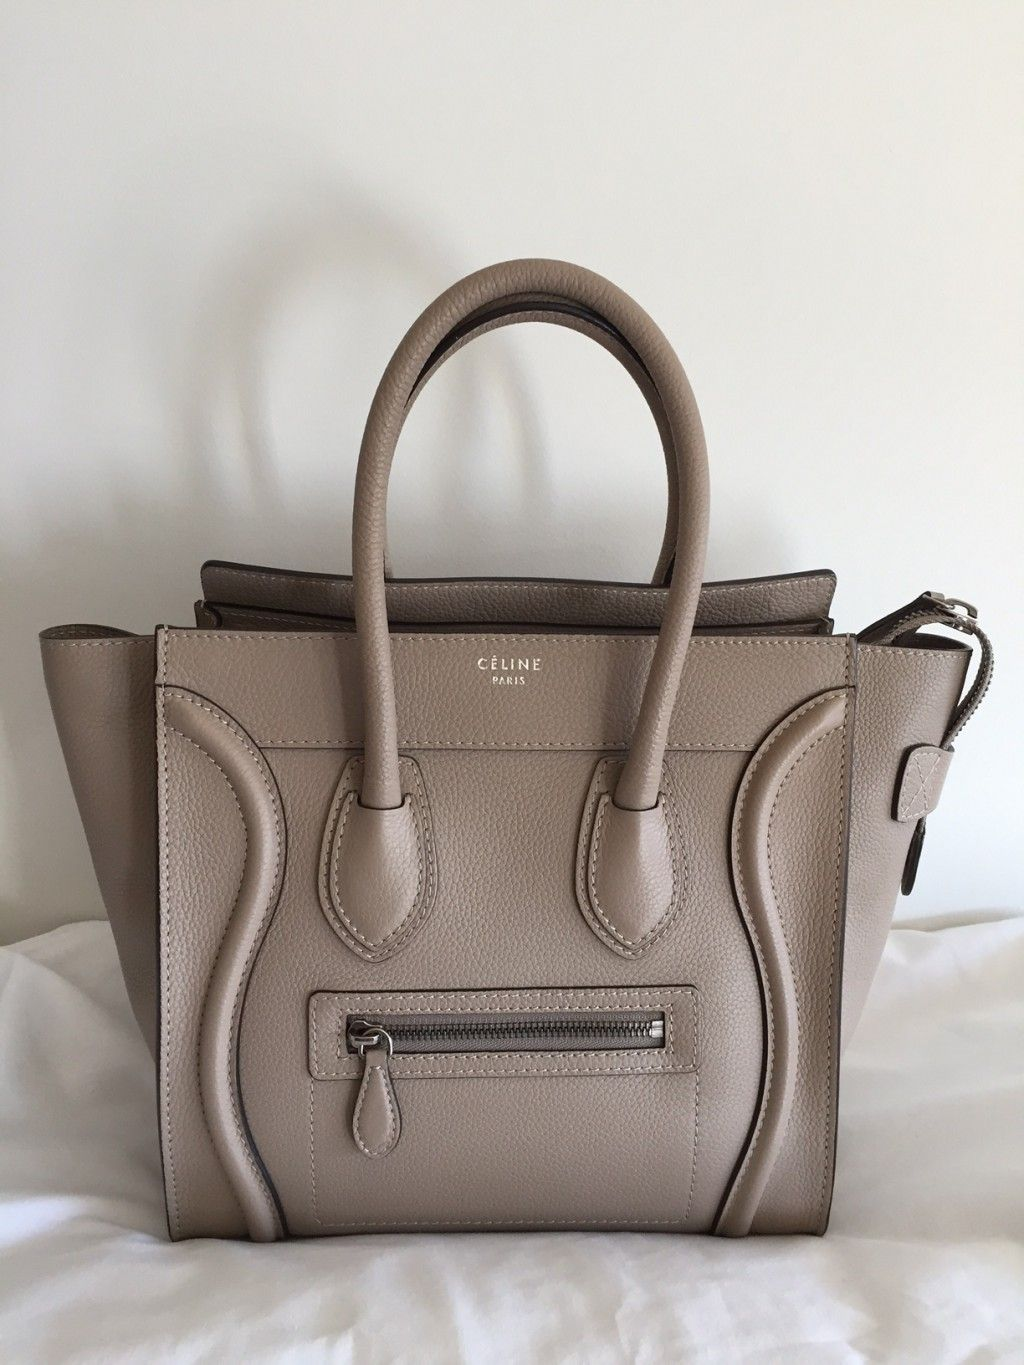 Celine Dune Micro Luggage Tote Ing It For A Great Price Because Was Used Just Few Times